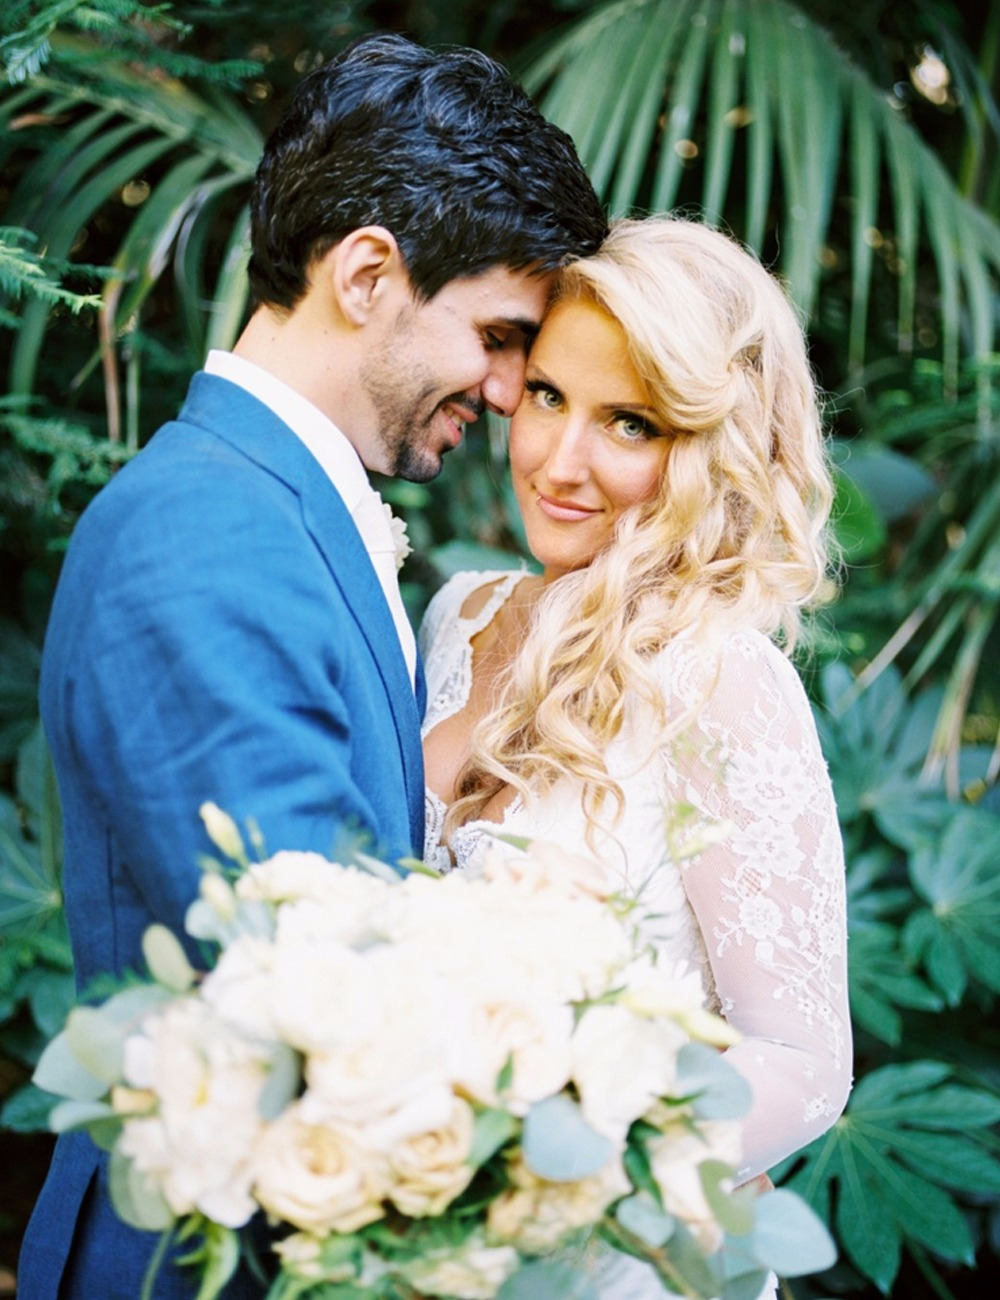 10 Noteworthy Relationship Tips for Newlyweds